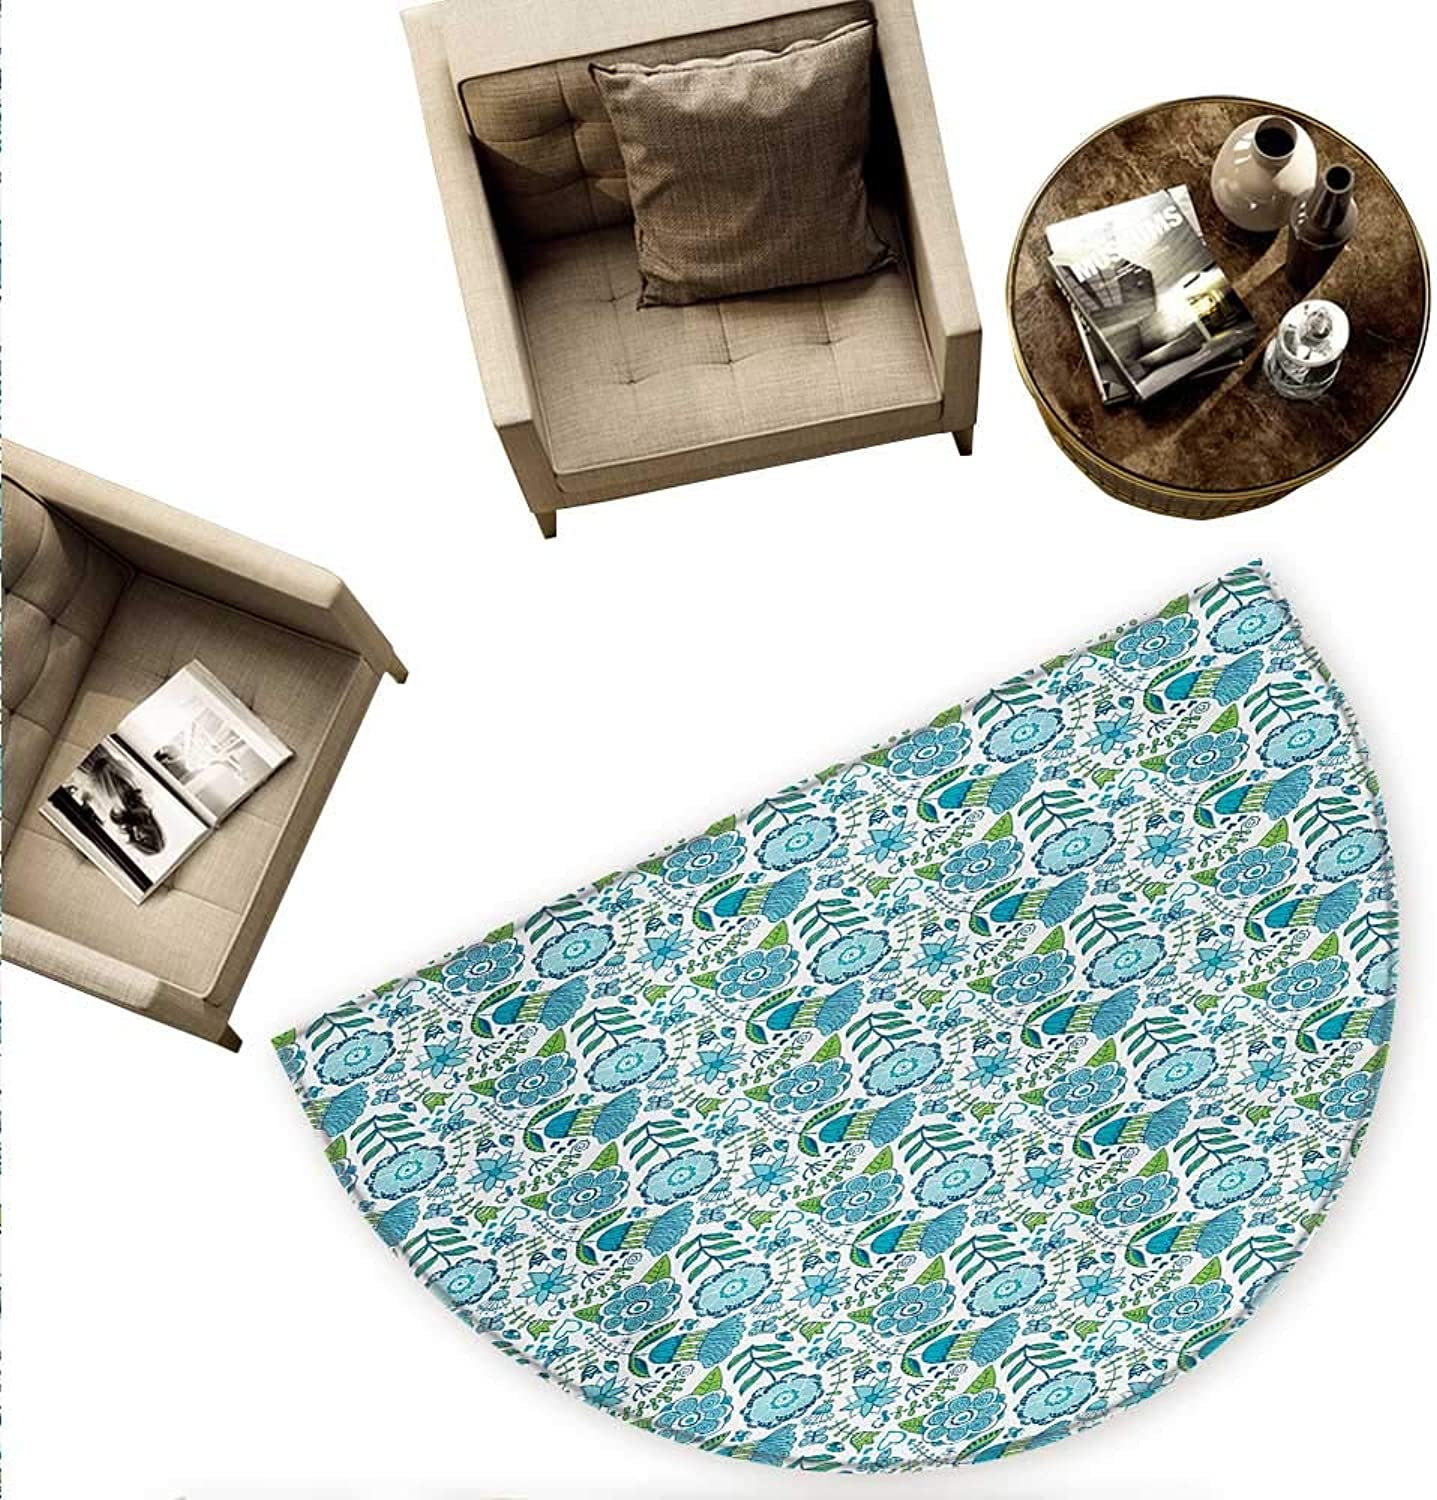 bluee and Green Semicircular Cushion Doodle Illustration of Nature Flower Butterflies and Dragonflies Entry Door Mat H 55.1  xD 82.6  bluee Apple Green White